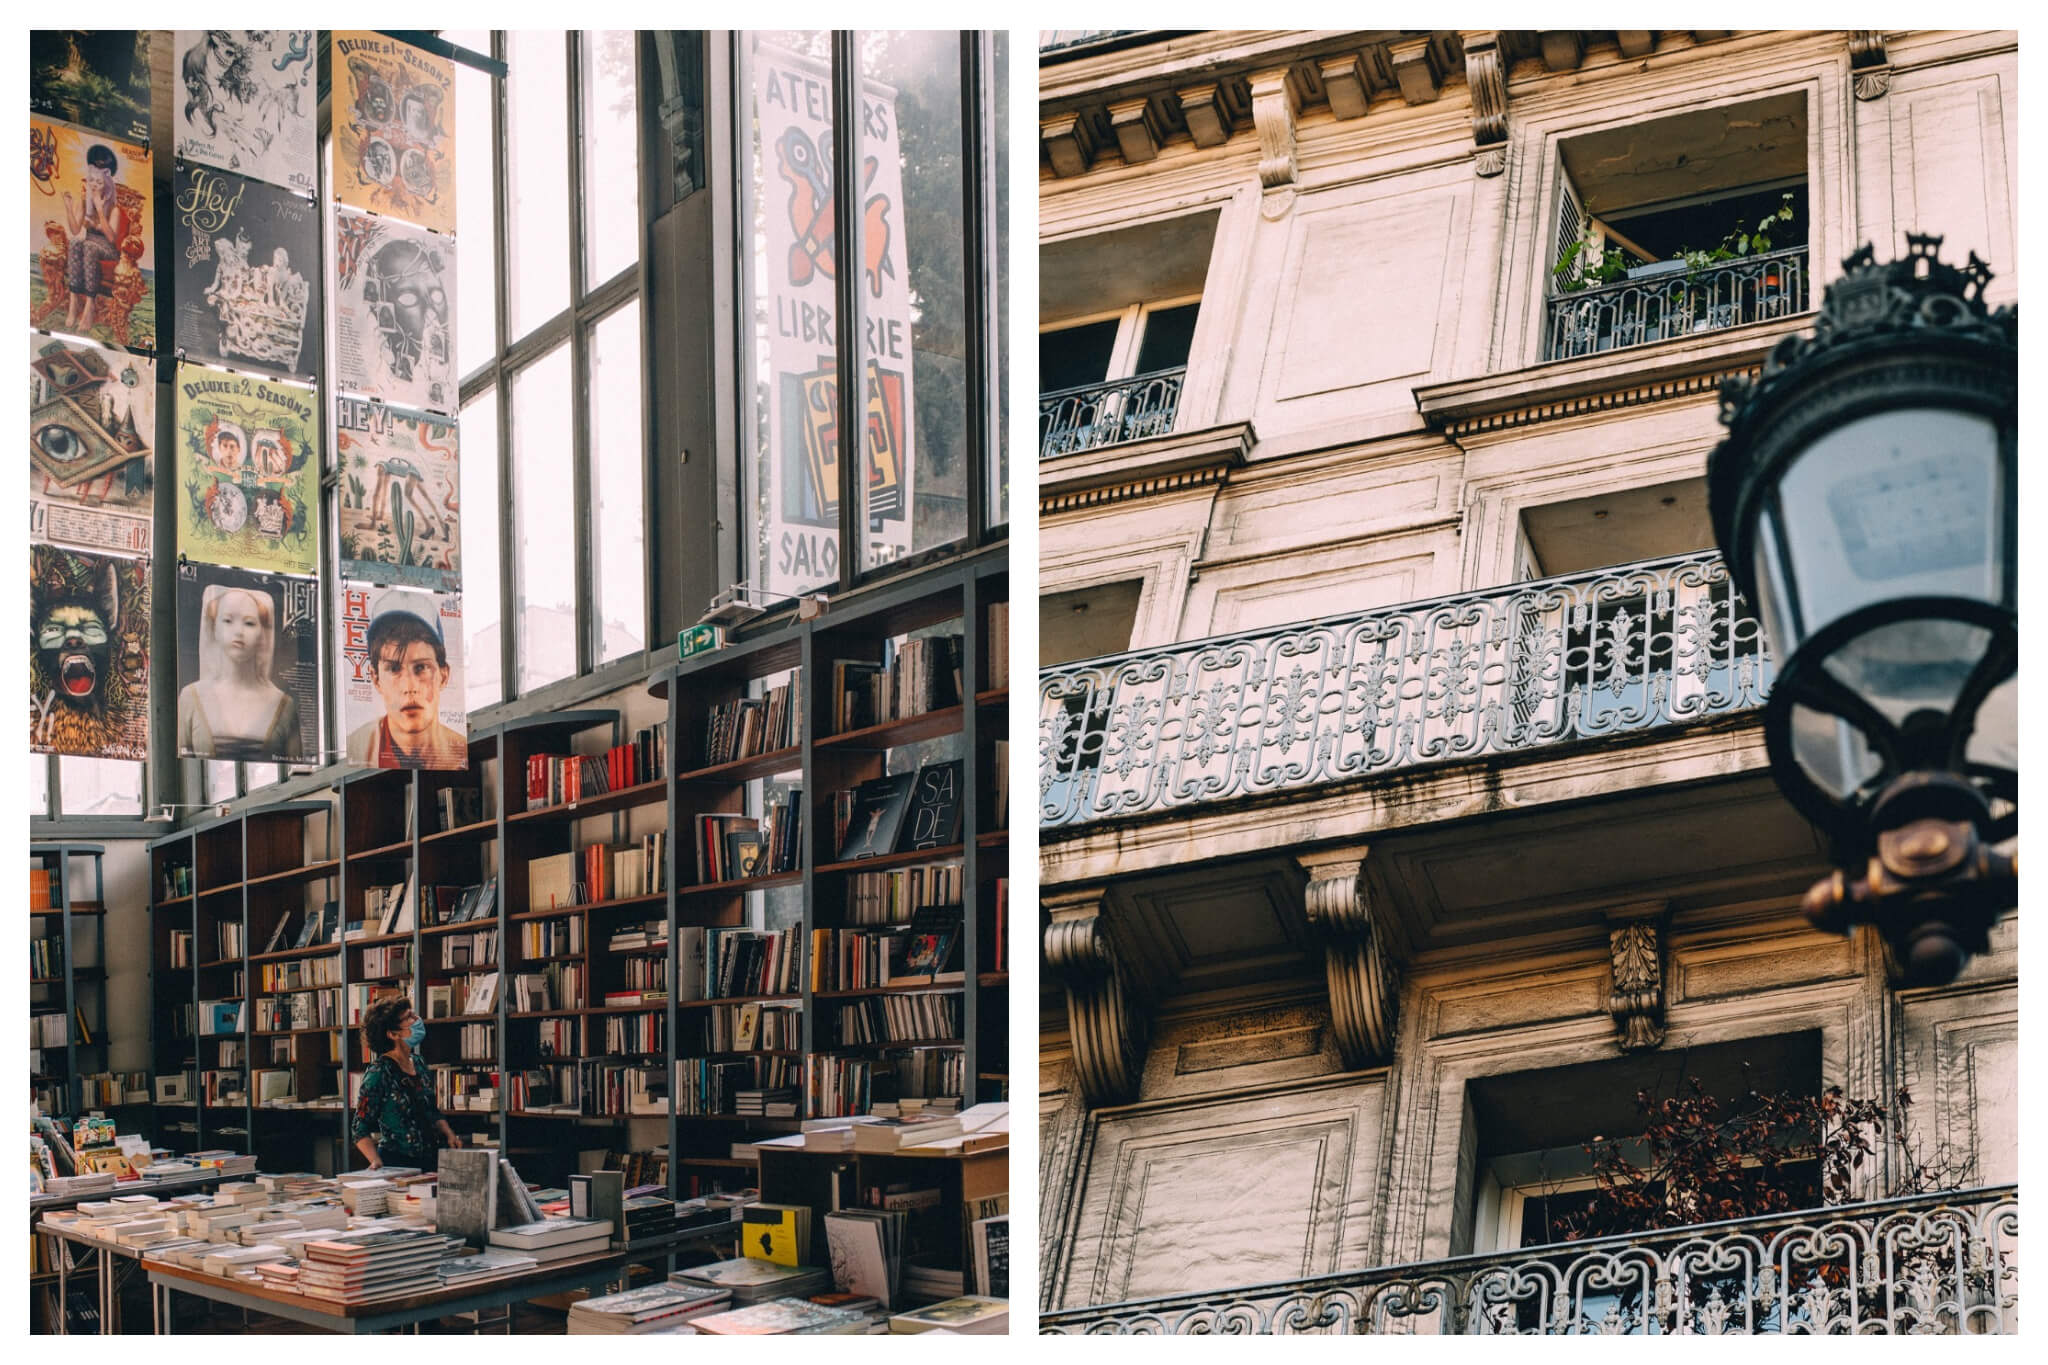 Left: A woman wearing a face masks browses through books at a store in Paris, Right: A shot of Parisian balconies as seen from the street.